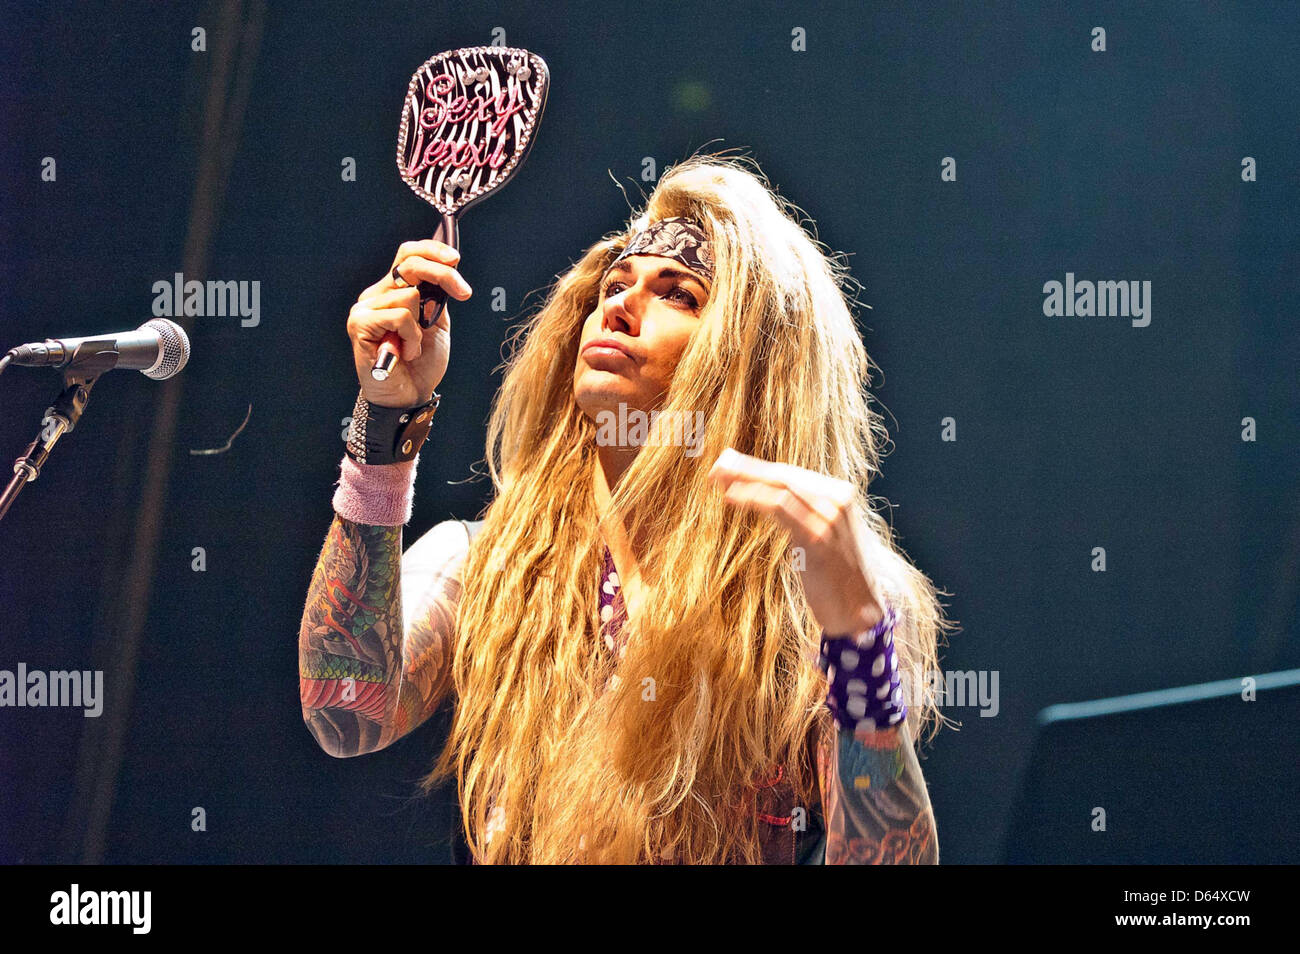 Steel panther balls out duly answer